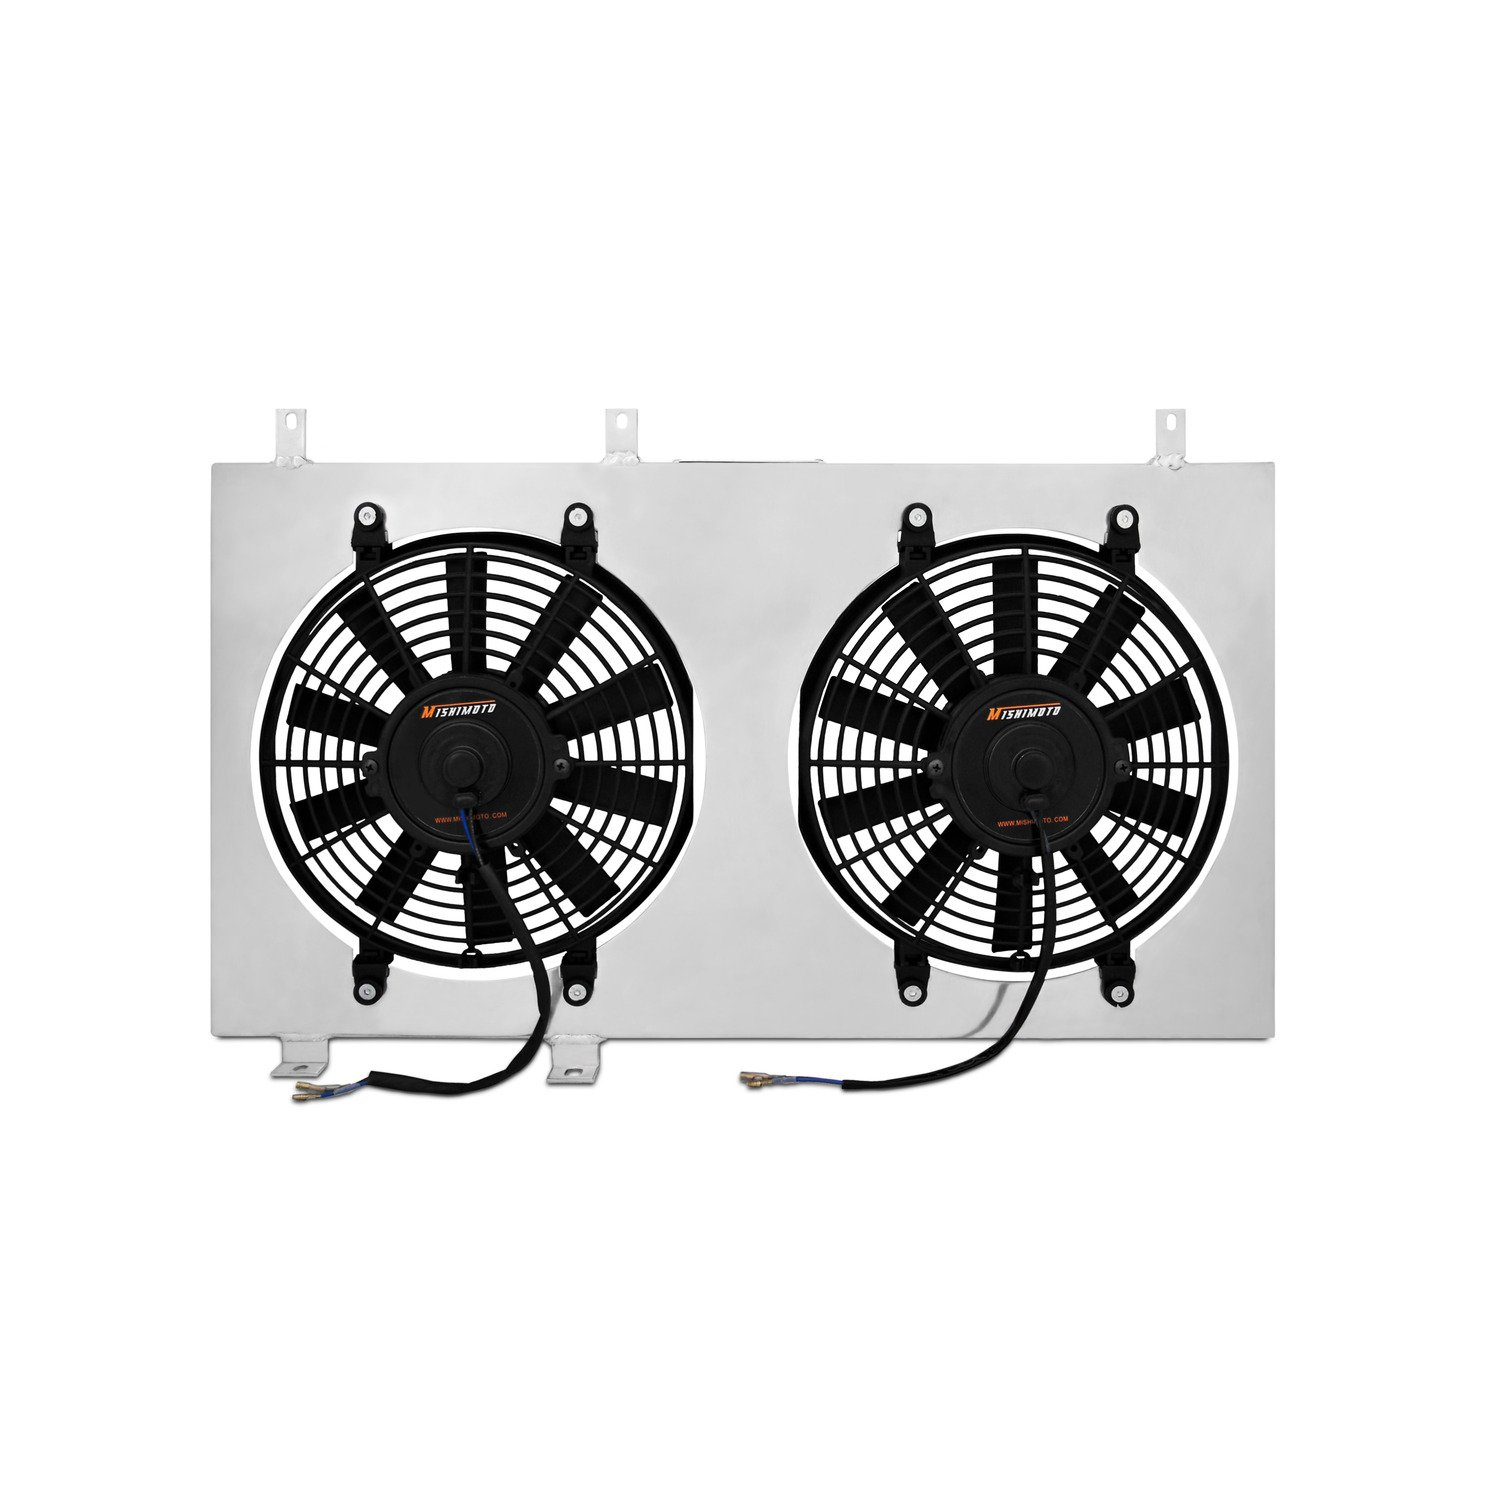 Mishimoto MMFS-MUS-79 Ford Mustang Performance Aluminum Radiator Fan Shroud Kit, 1979-1993, Silver